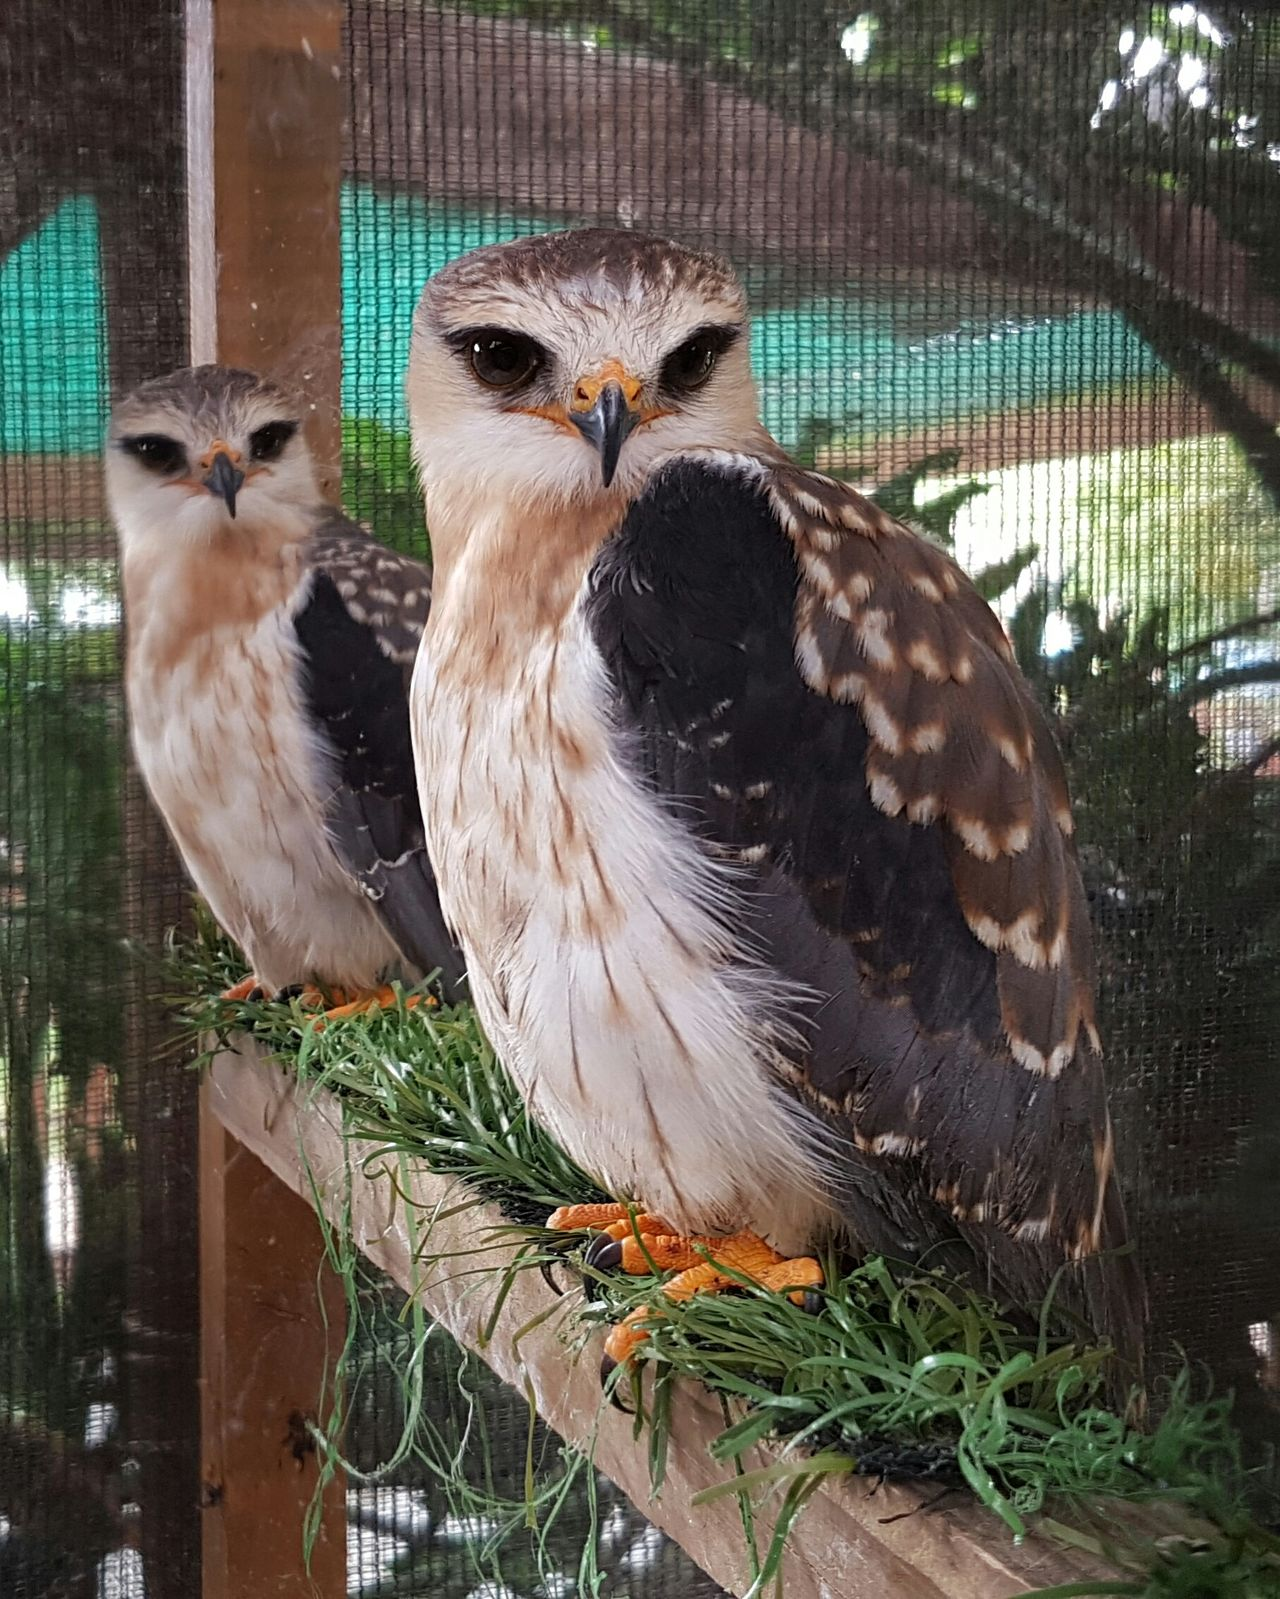 Animal Themes Bird Animals In Captivity No People Animals In The Wild Animal Wildlife Nature Cage Tree Day Mammal Perching Zoo Outdoors Beauty In Nature Rescued ❤ Raptors